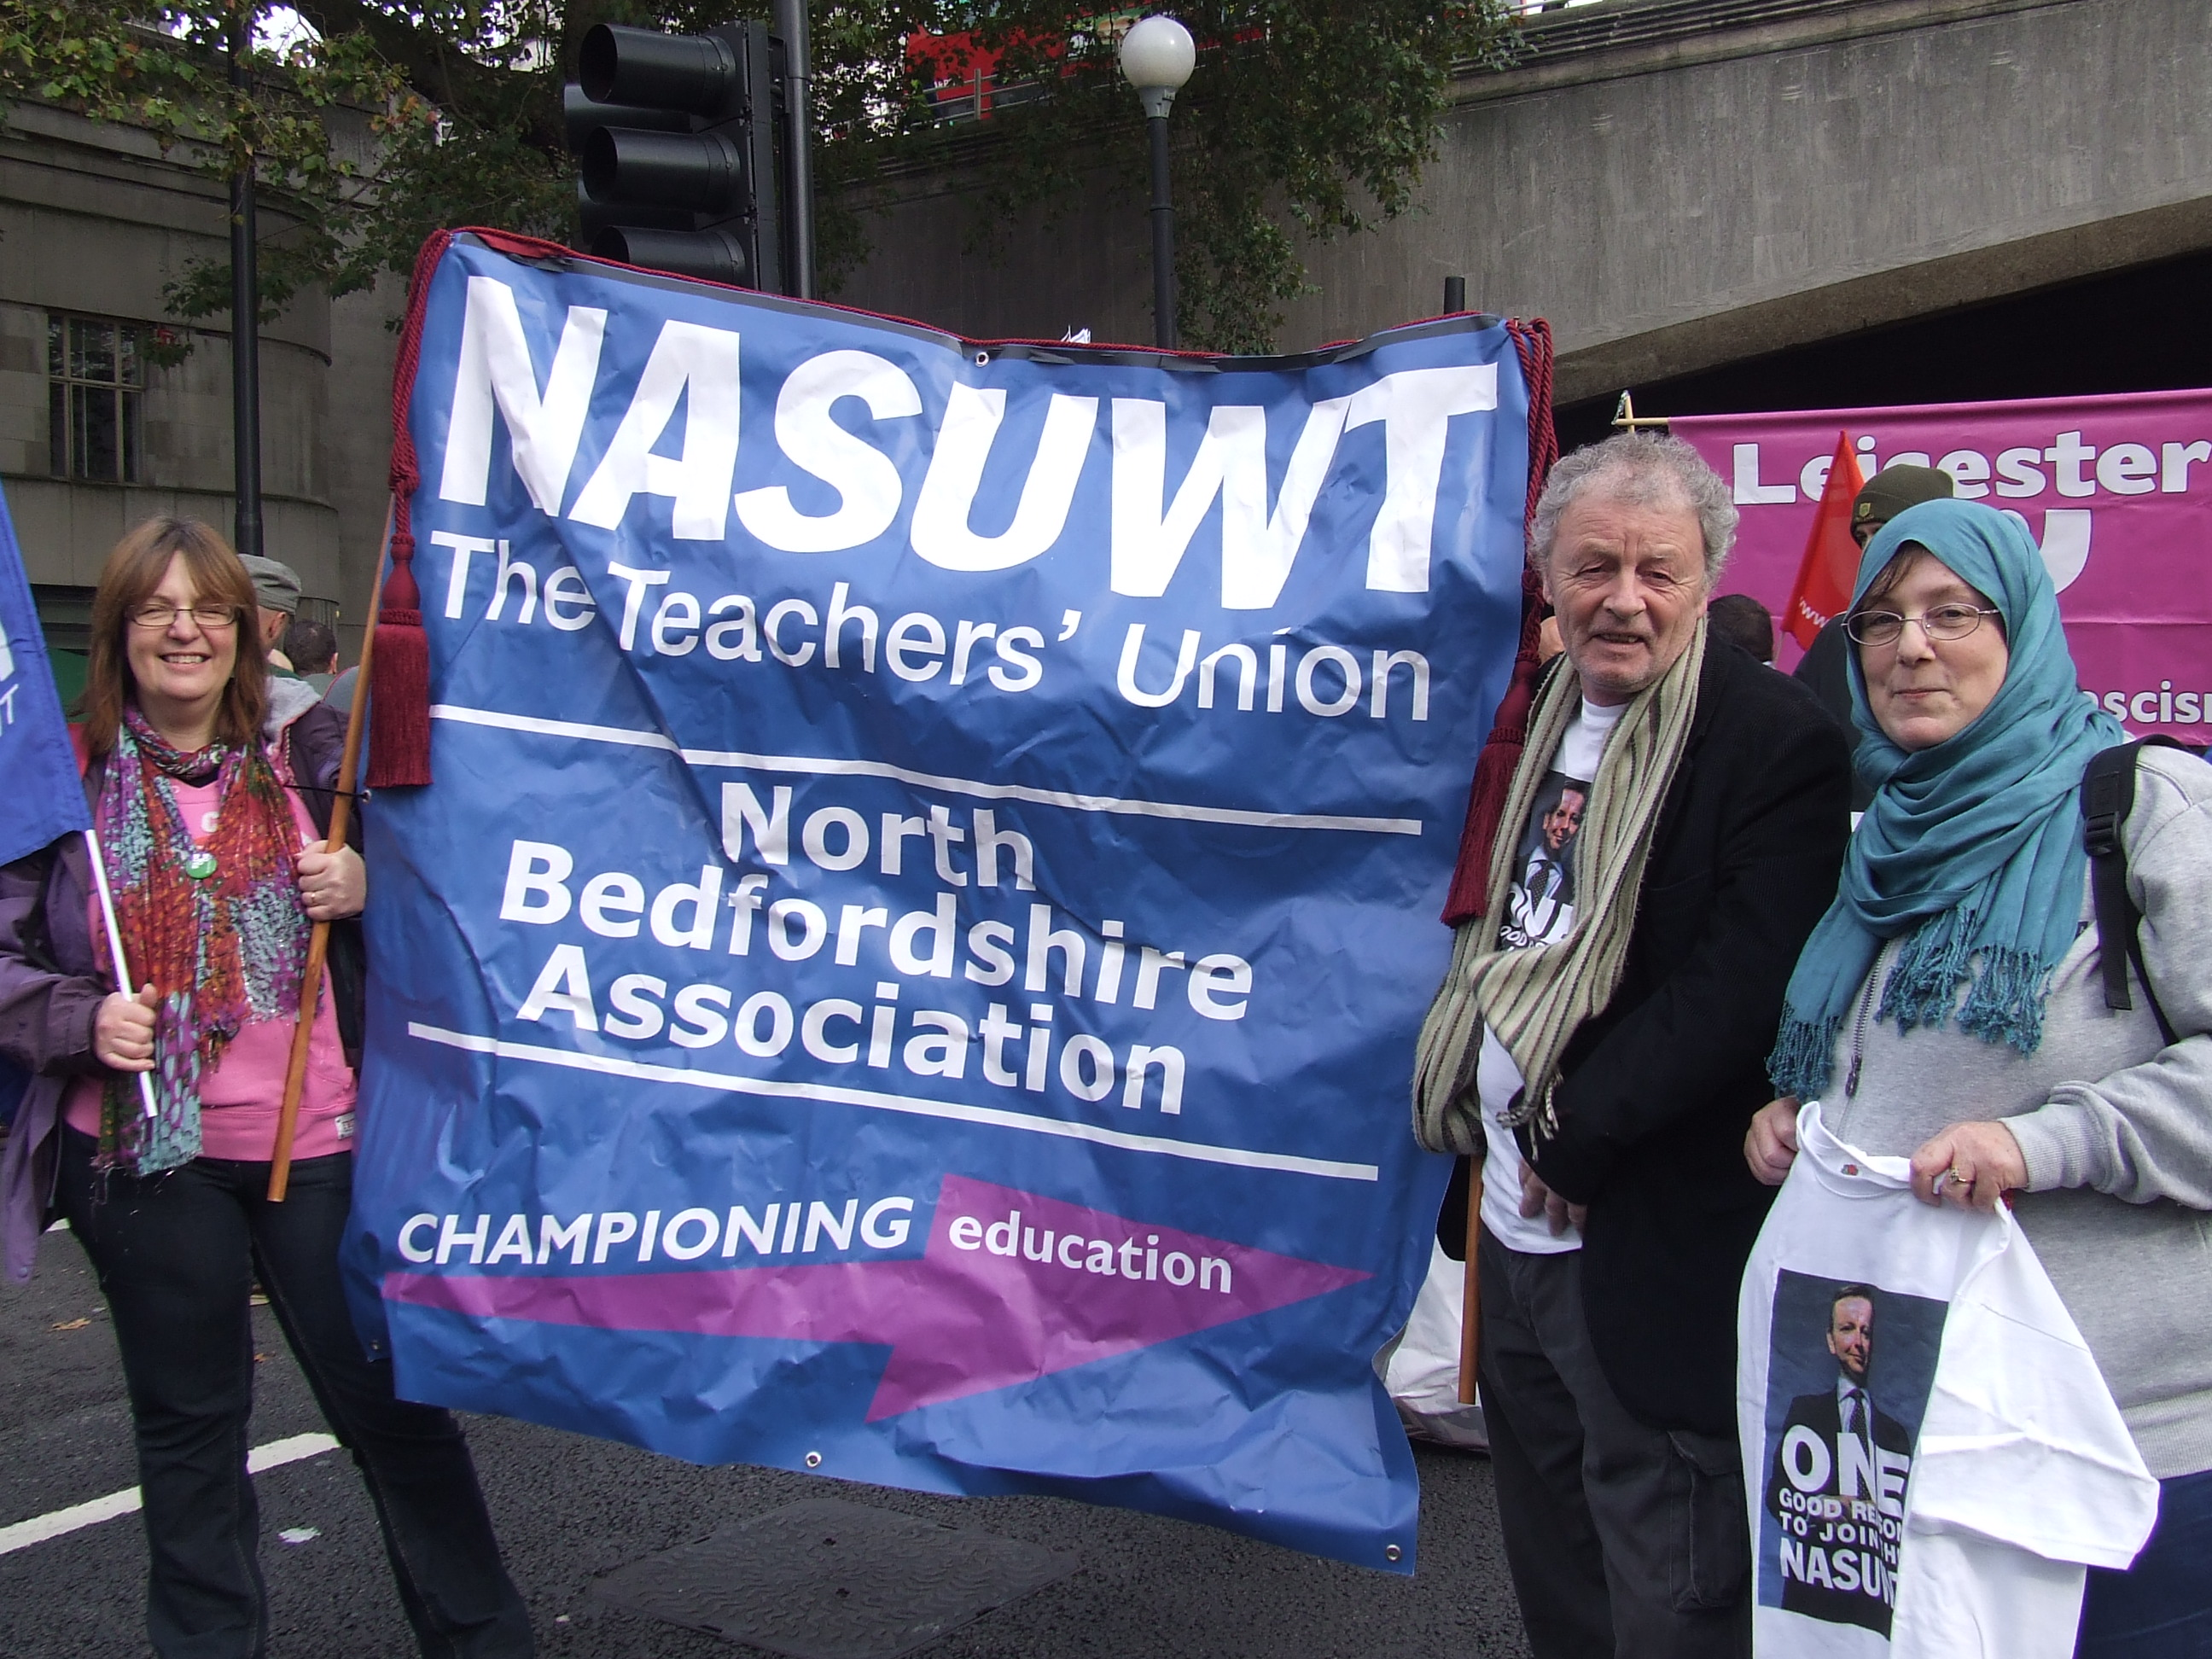 North Beds NASUWT Saturday Outing